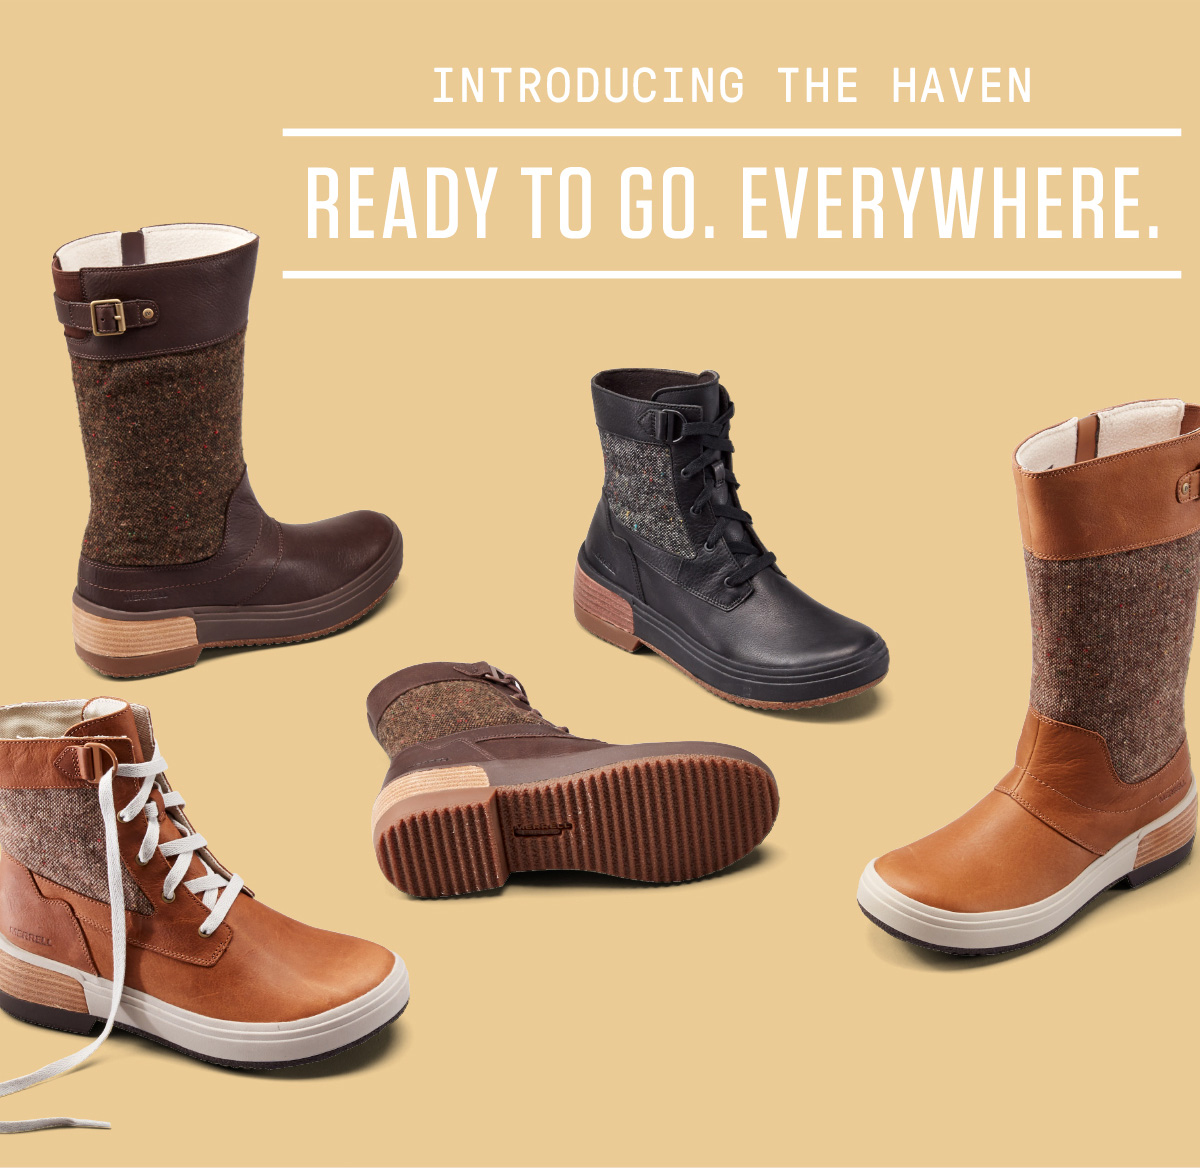 INTRODUCING THE HAVEN - READY TO GO. EVERYWHERE.